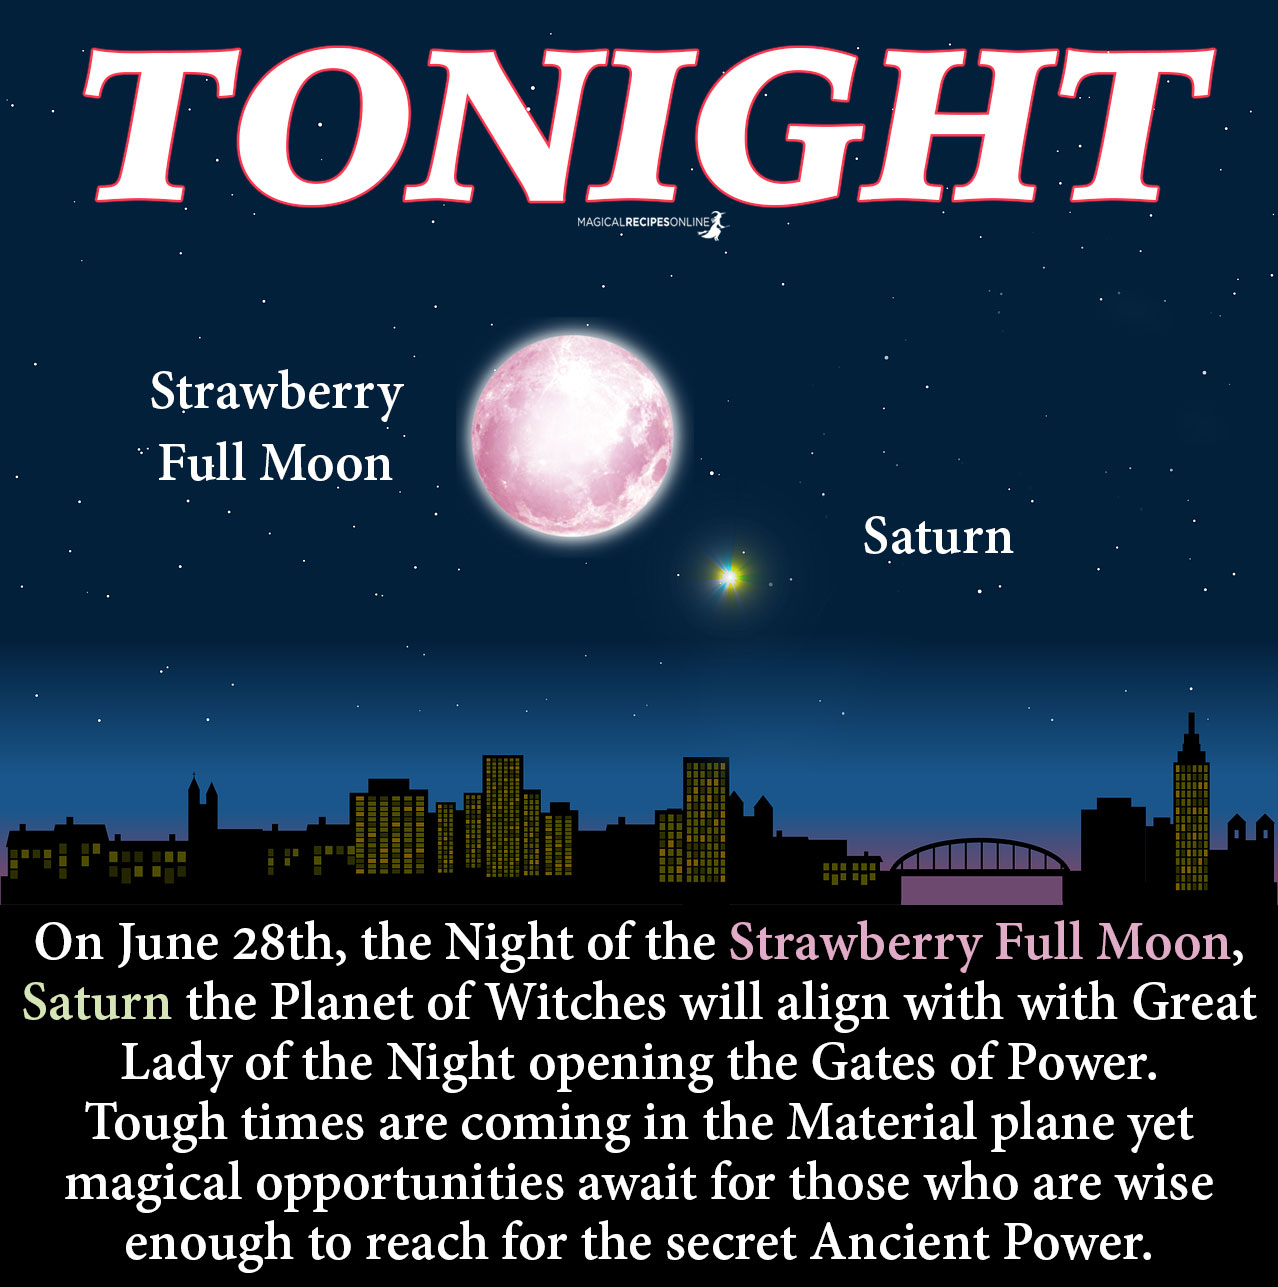 On June 28th, the Night of the Strawberry Full Moon, Saturn the Planet of Witches will align with with Great Lady of the Night opening the Gates of Power.